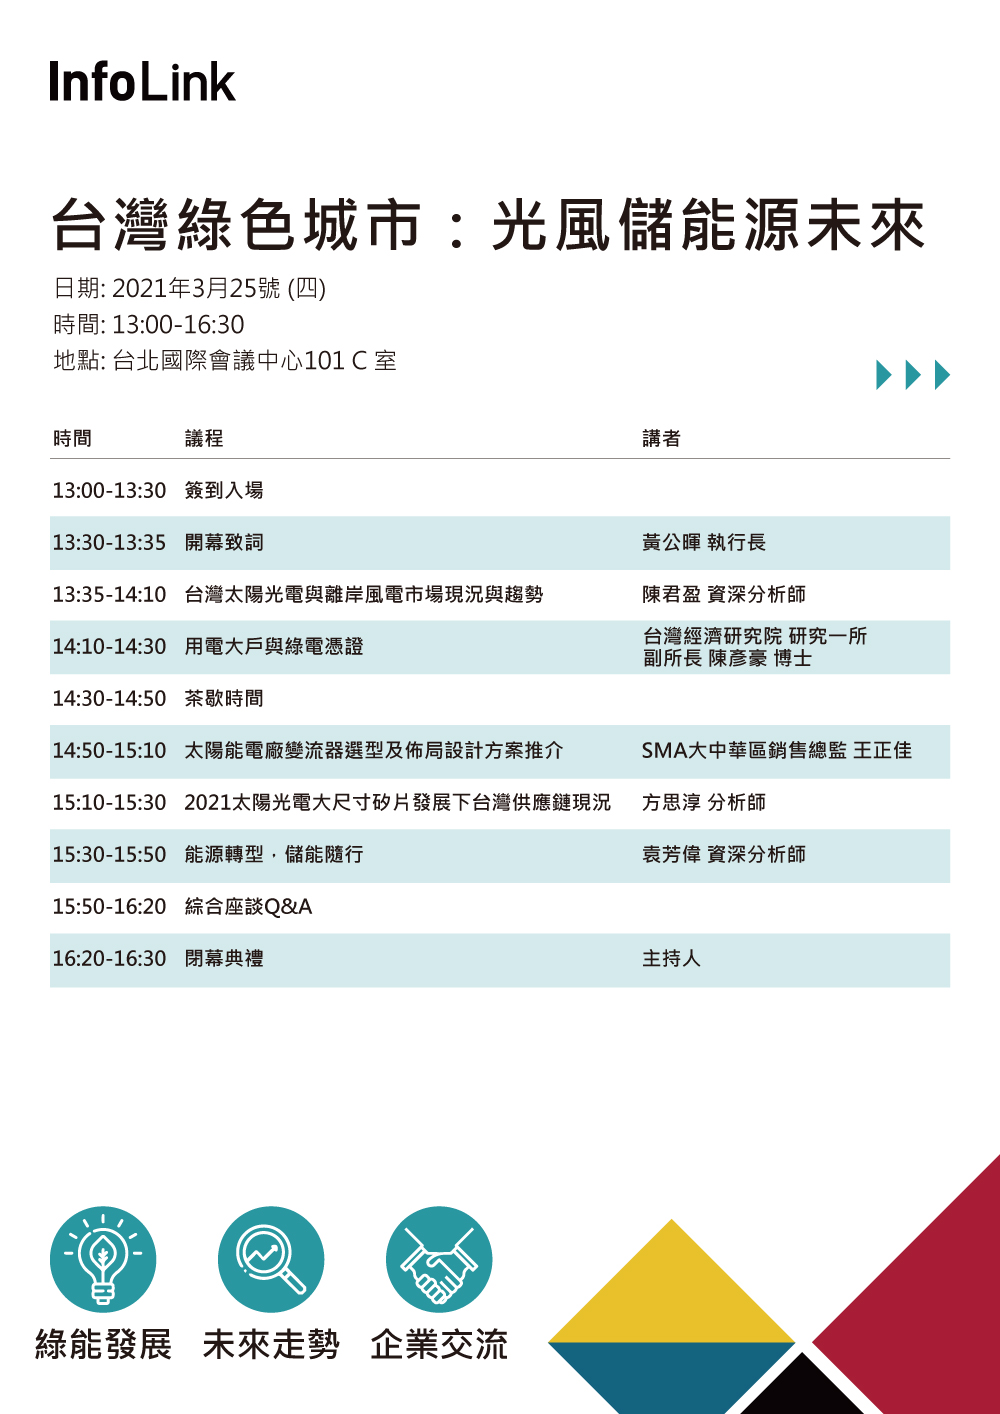 InfoLink 2021 conference on renewables development in Taiwan